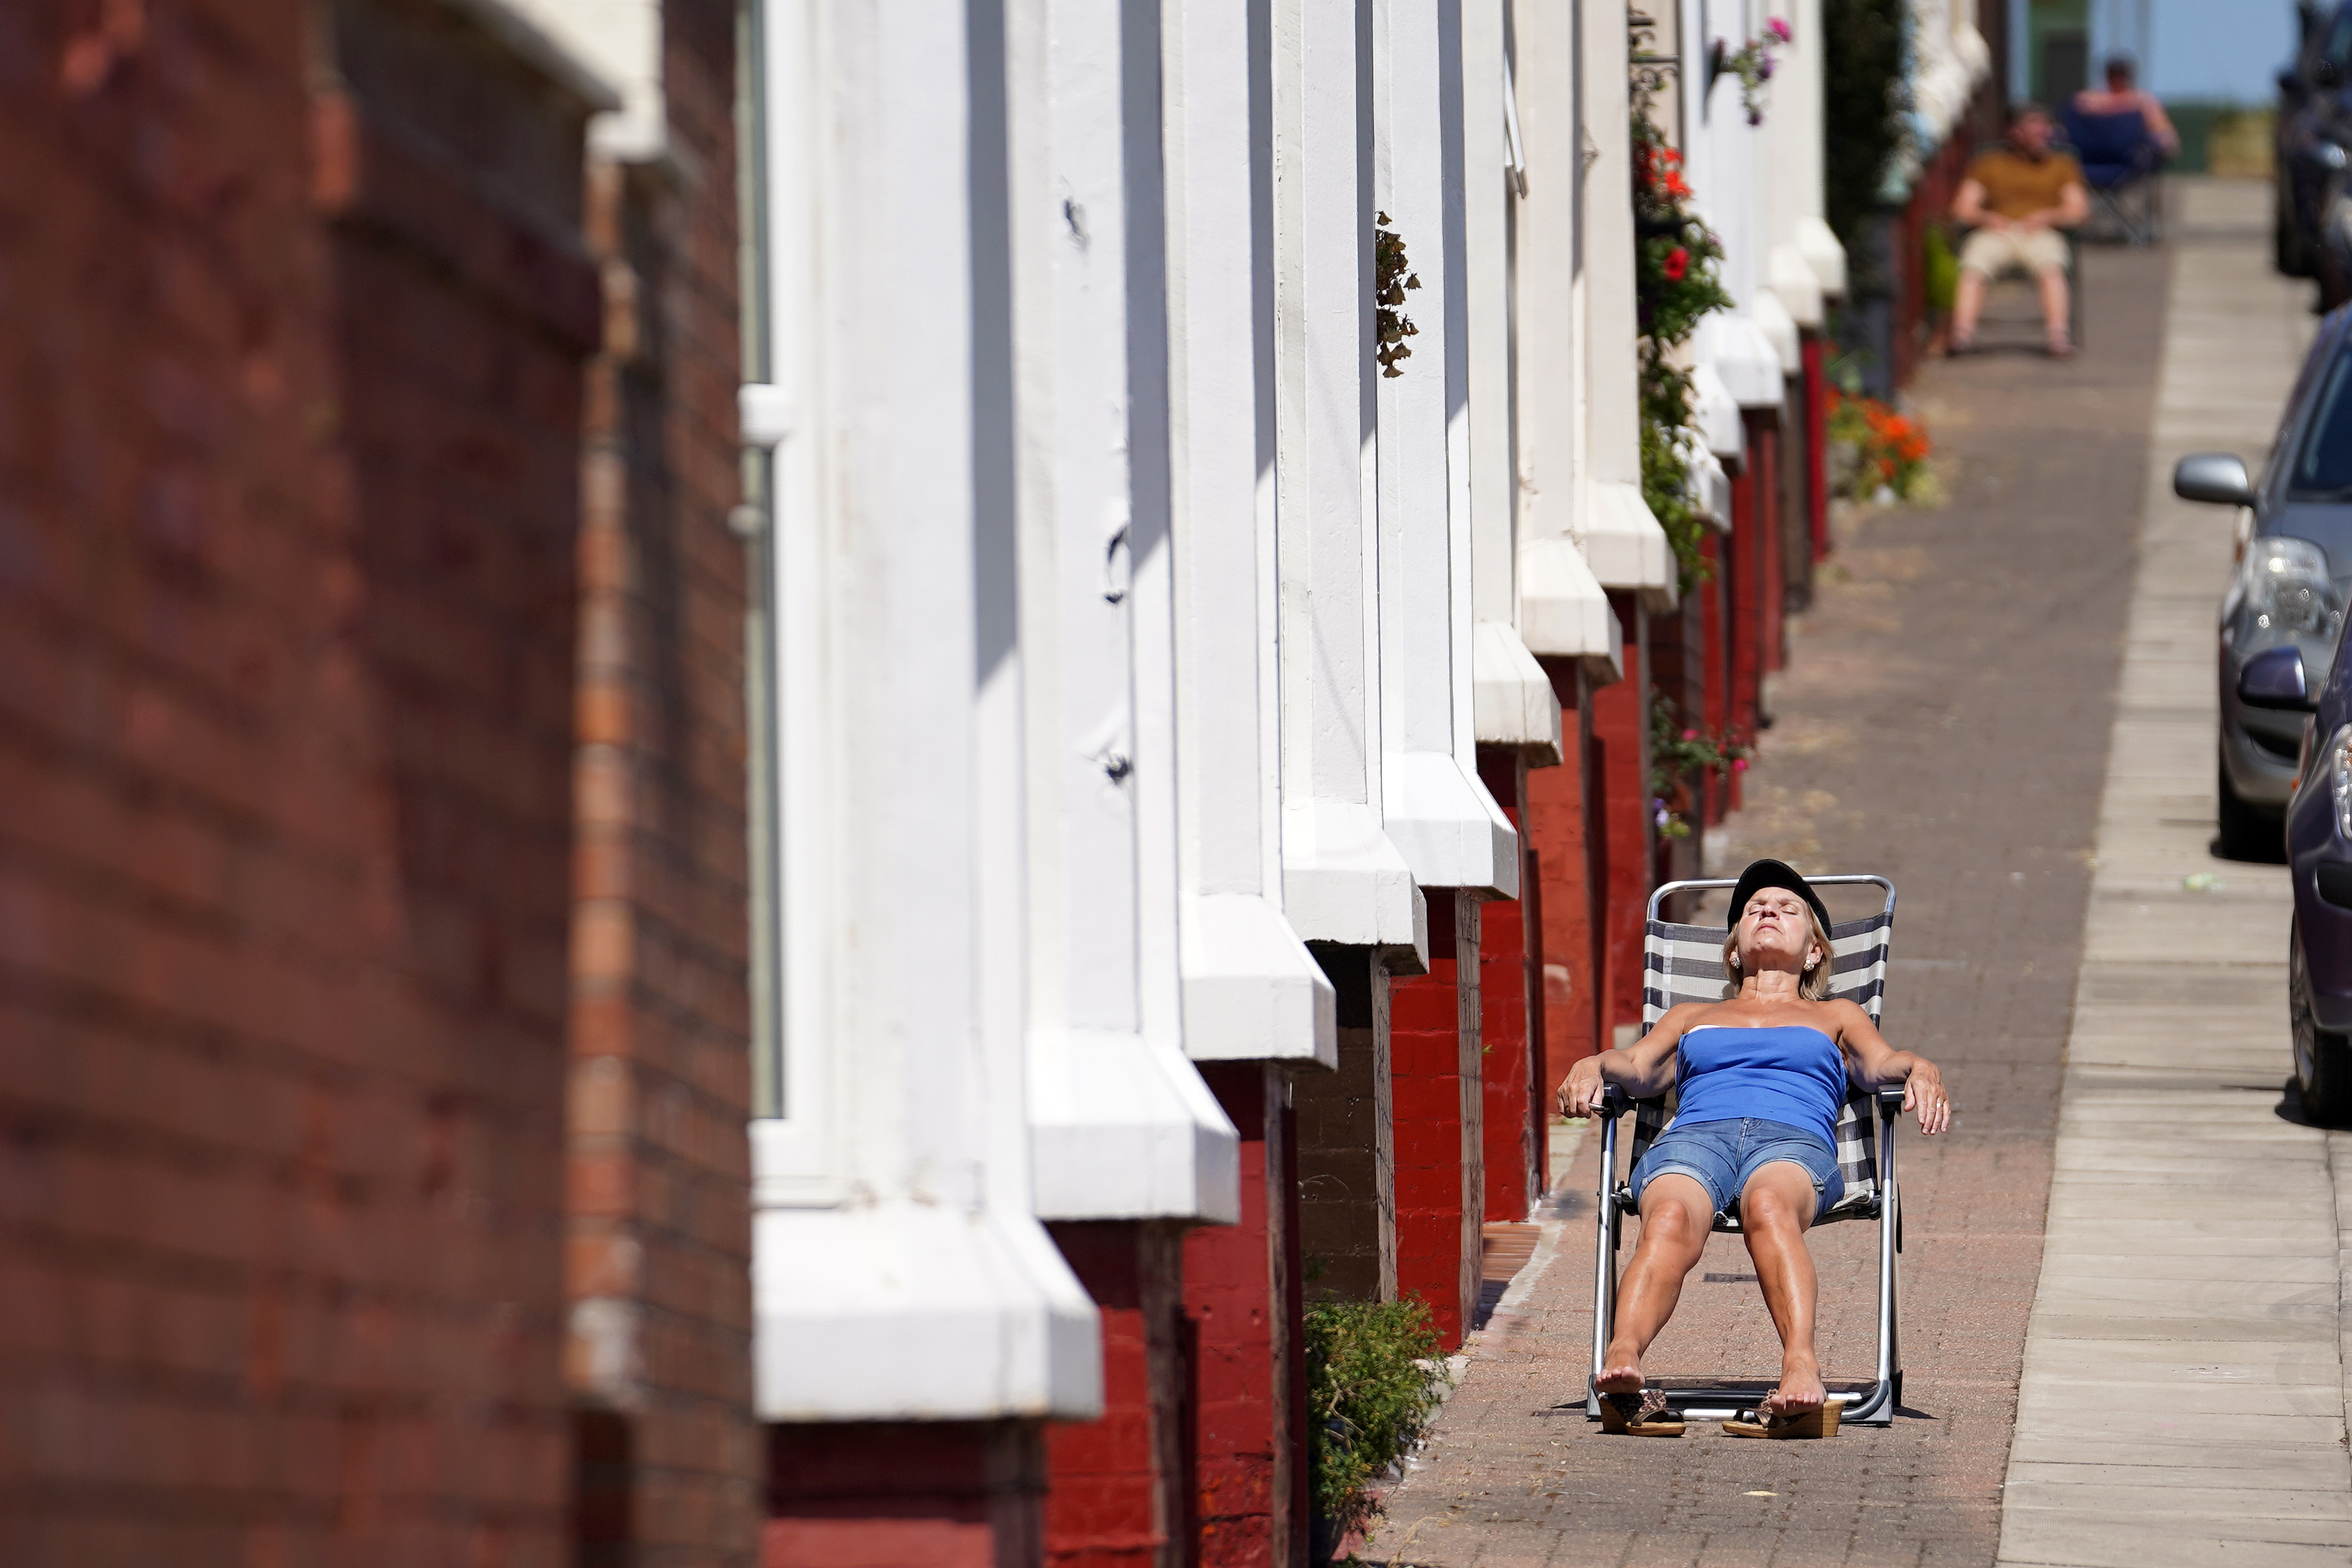 LIVERPOOL, UNITED KINGDOM - MAY 28: People enjoy the warm and sunny weather relaxing on the pavement outside their homes in the Shorefields area of Liverpool during the Coronavirus pandemic lockdown on May 28, 2020 in Liverpool, United Kingdom. The British government continues to ease the coronavirus lockdown by announcing schools will open to reception year pupils plus years one and six from June 1st. Open-air markets and car showrooms can also open from the same date.  (Photo by Christopher Furlong/Getty Images)